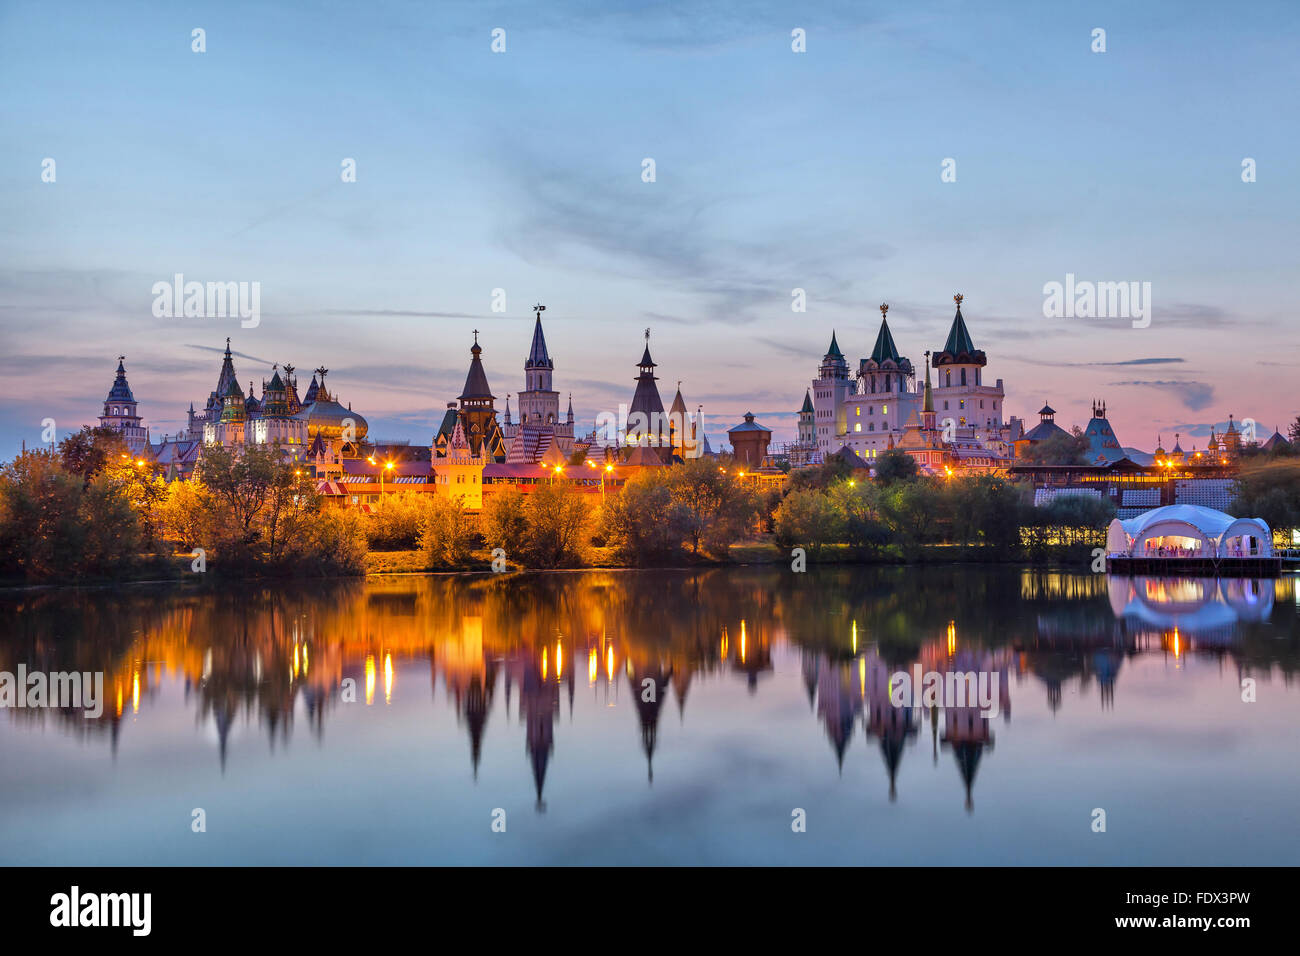 Izmaylovo Kremlin on sunset, Moscow, Russia - Stock Image